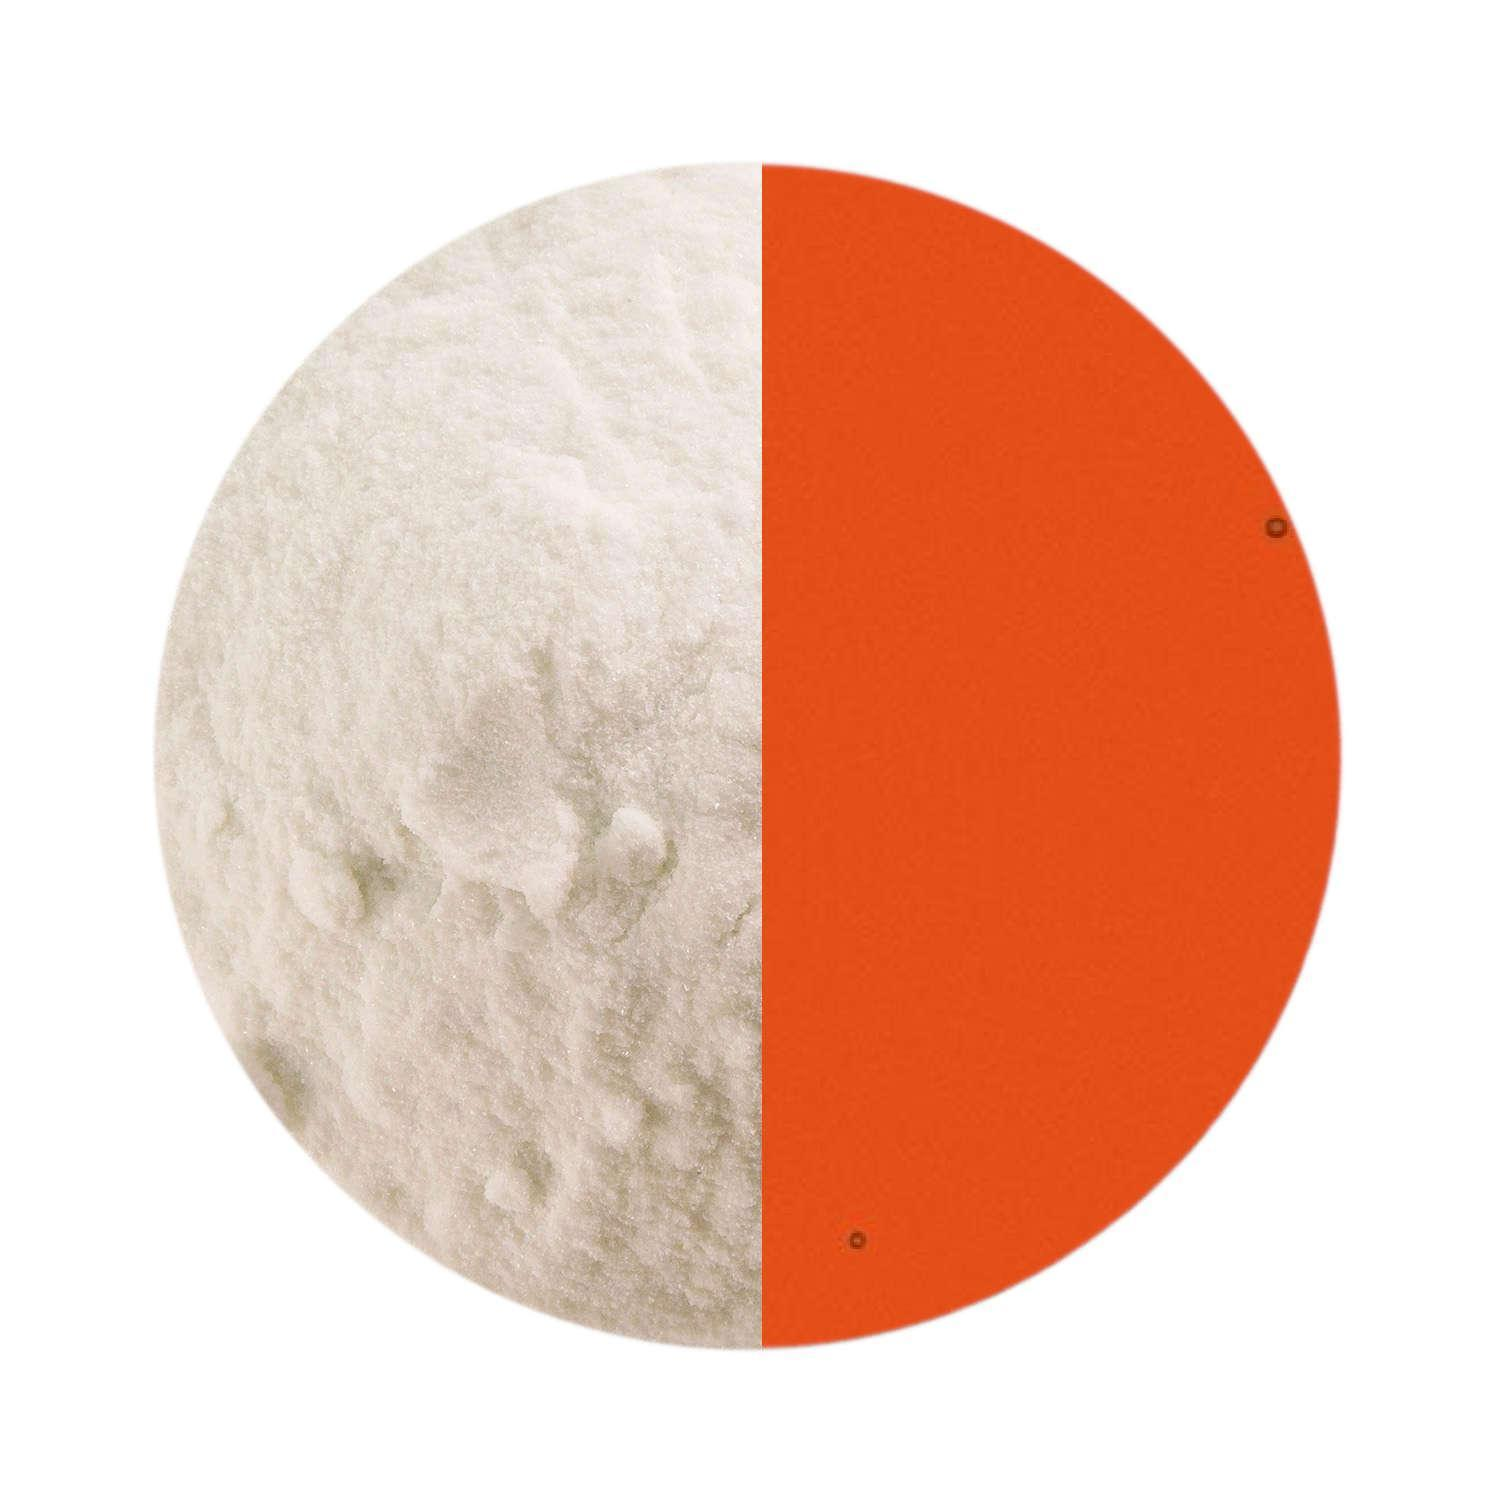 5 oz Light Orange Transparent Powder Frit - 90 COE